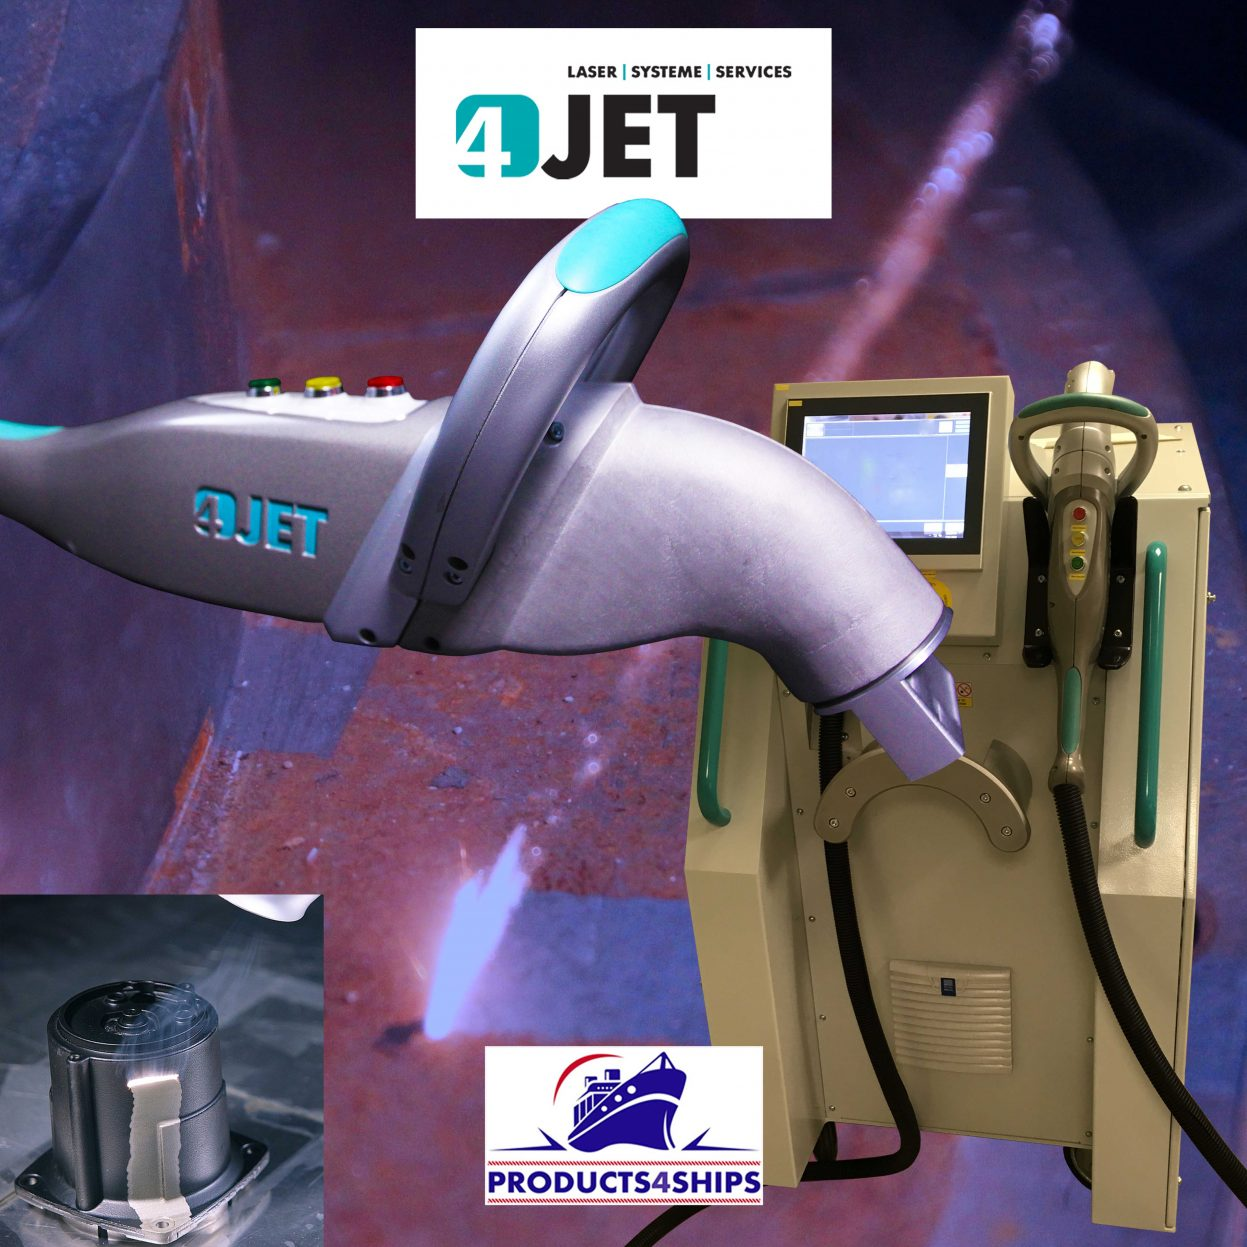 Products4Ships 4JET Jetlaser lasercleaning